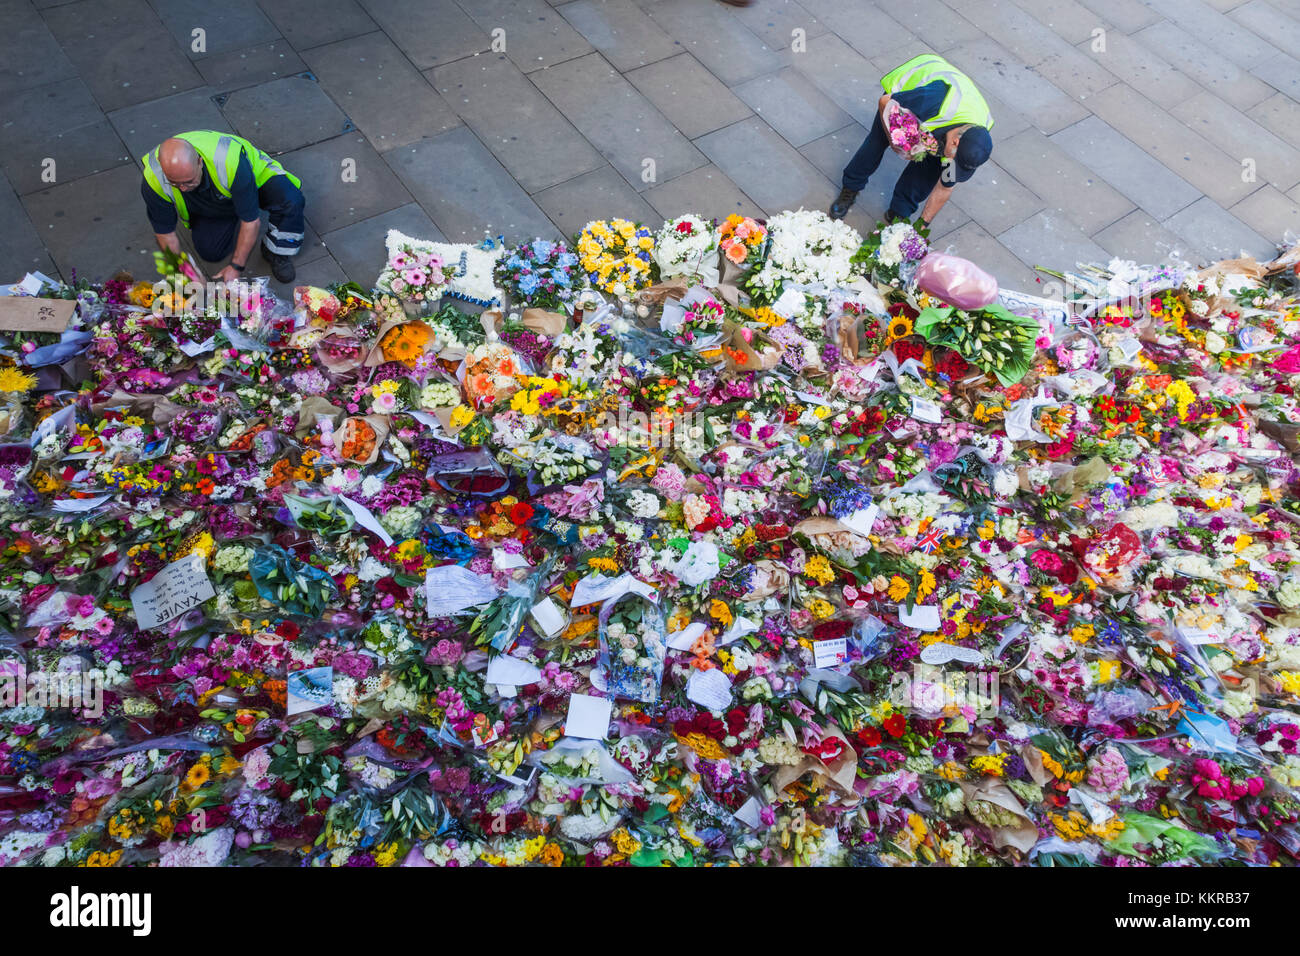 England, London, Southwark, London Bridge, Memorial Flowers for The Victims of The June 2017 Terrorist Attack - Stock Image